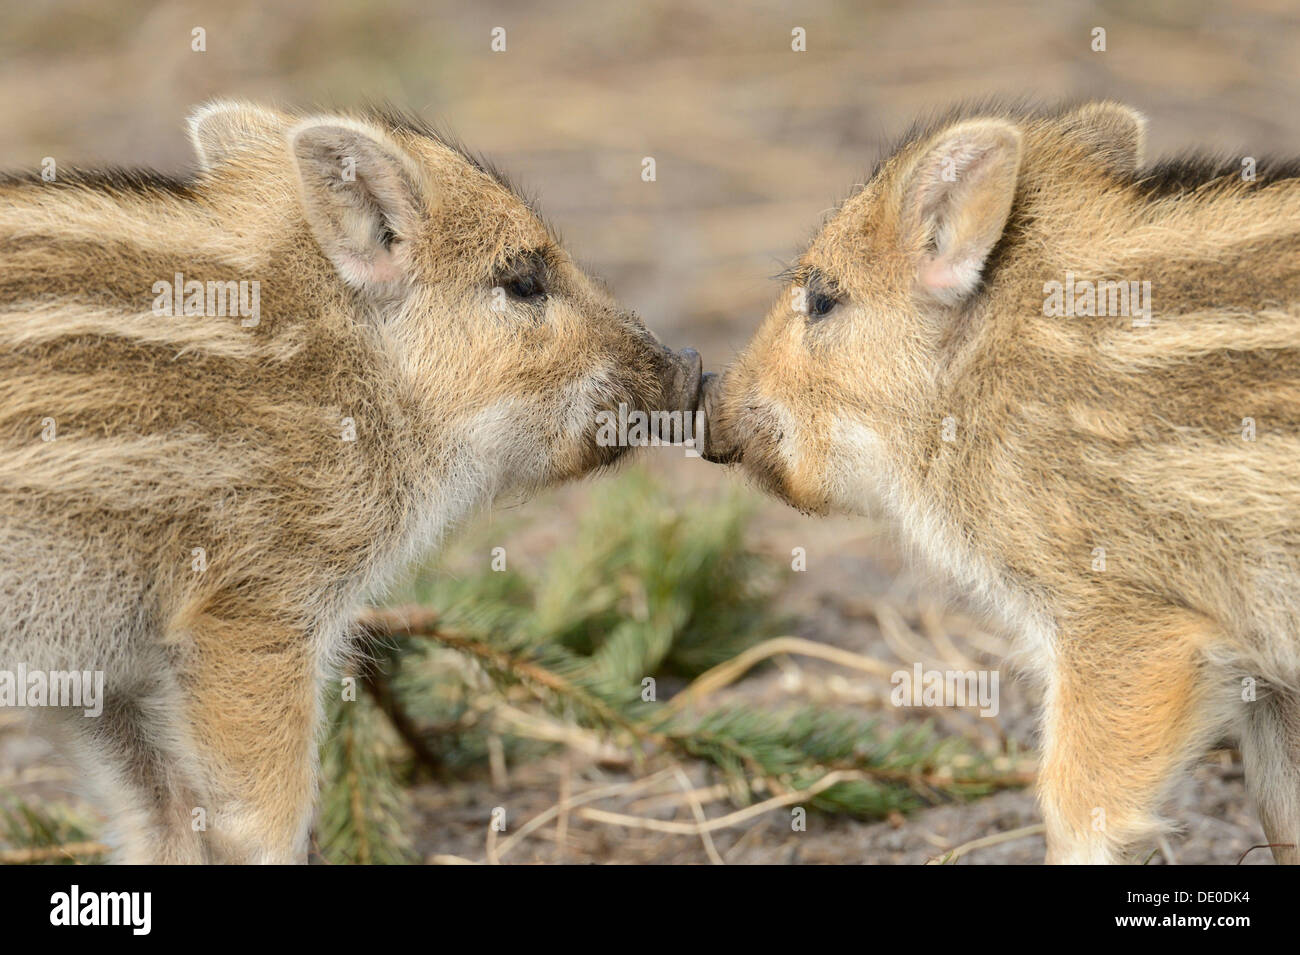 Wild boar (Sus scrofa), two piglets touching each other with their snouts Stock Photo